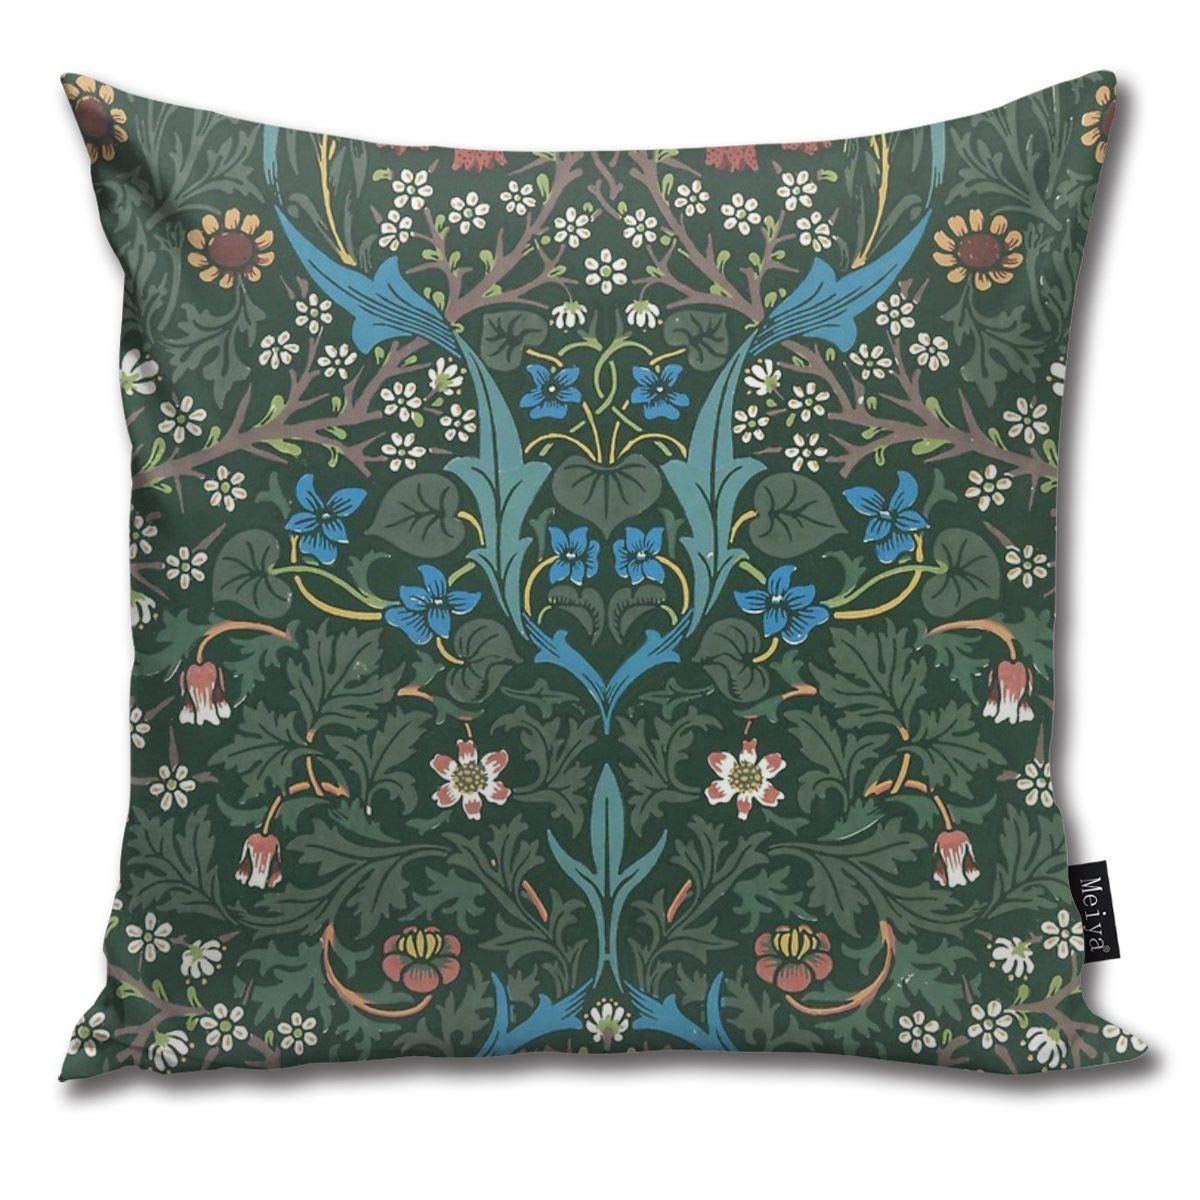 1892 Pillow Cover BLUETOP William Morris Blackthorn Pattern 18 x 18 Inch Winter Holiday Farmhouse Cotton Cushion Case Decoration for Sofa Couch